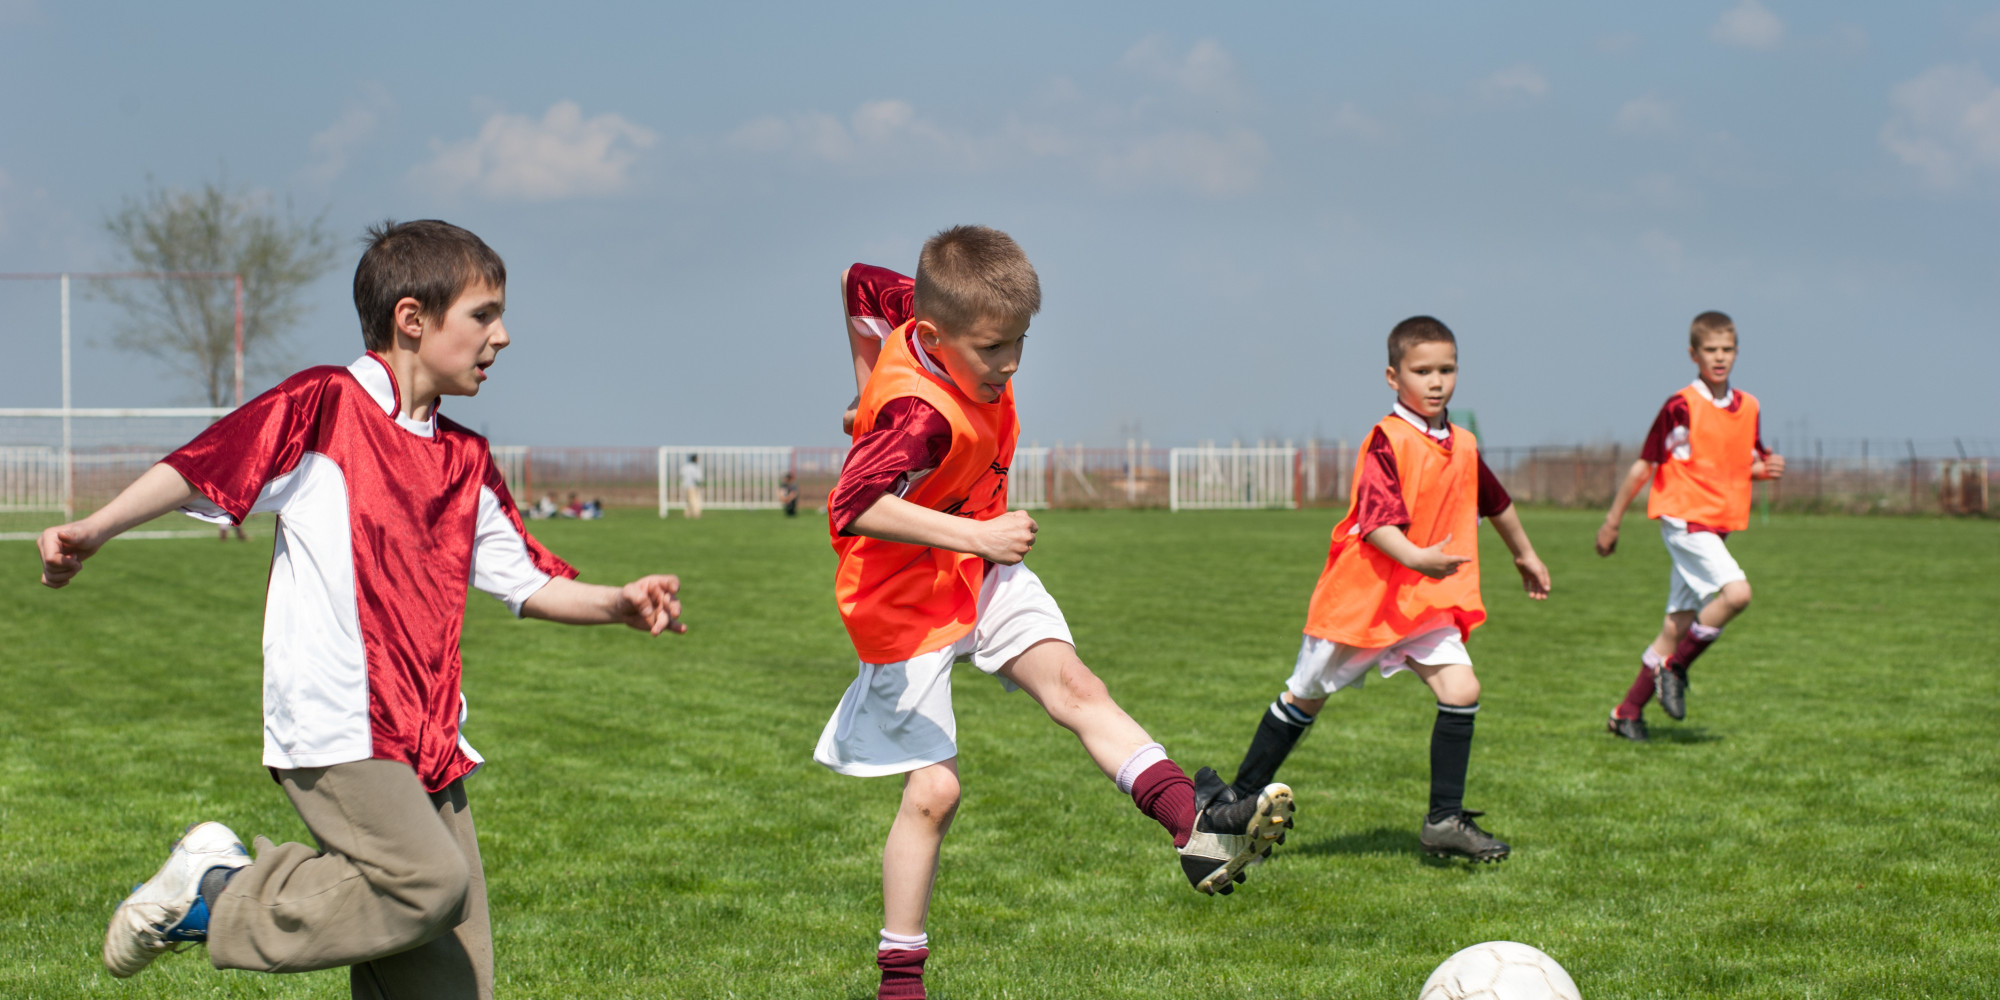 15 Reason Competitive Sports Are Great For Kids That Have